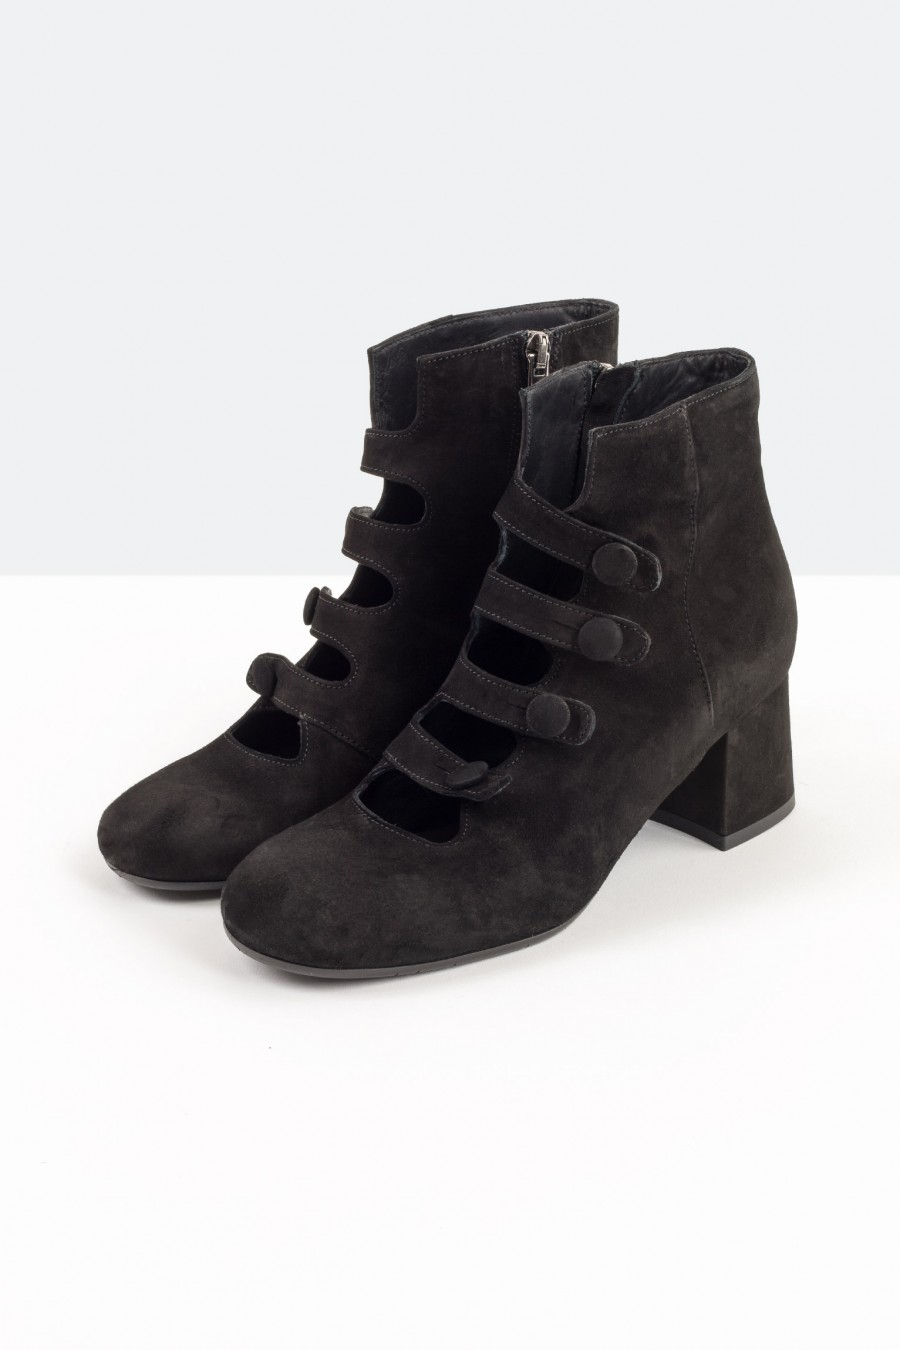 Black ankle boots with straps